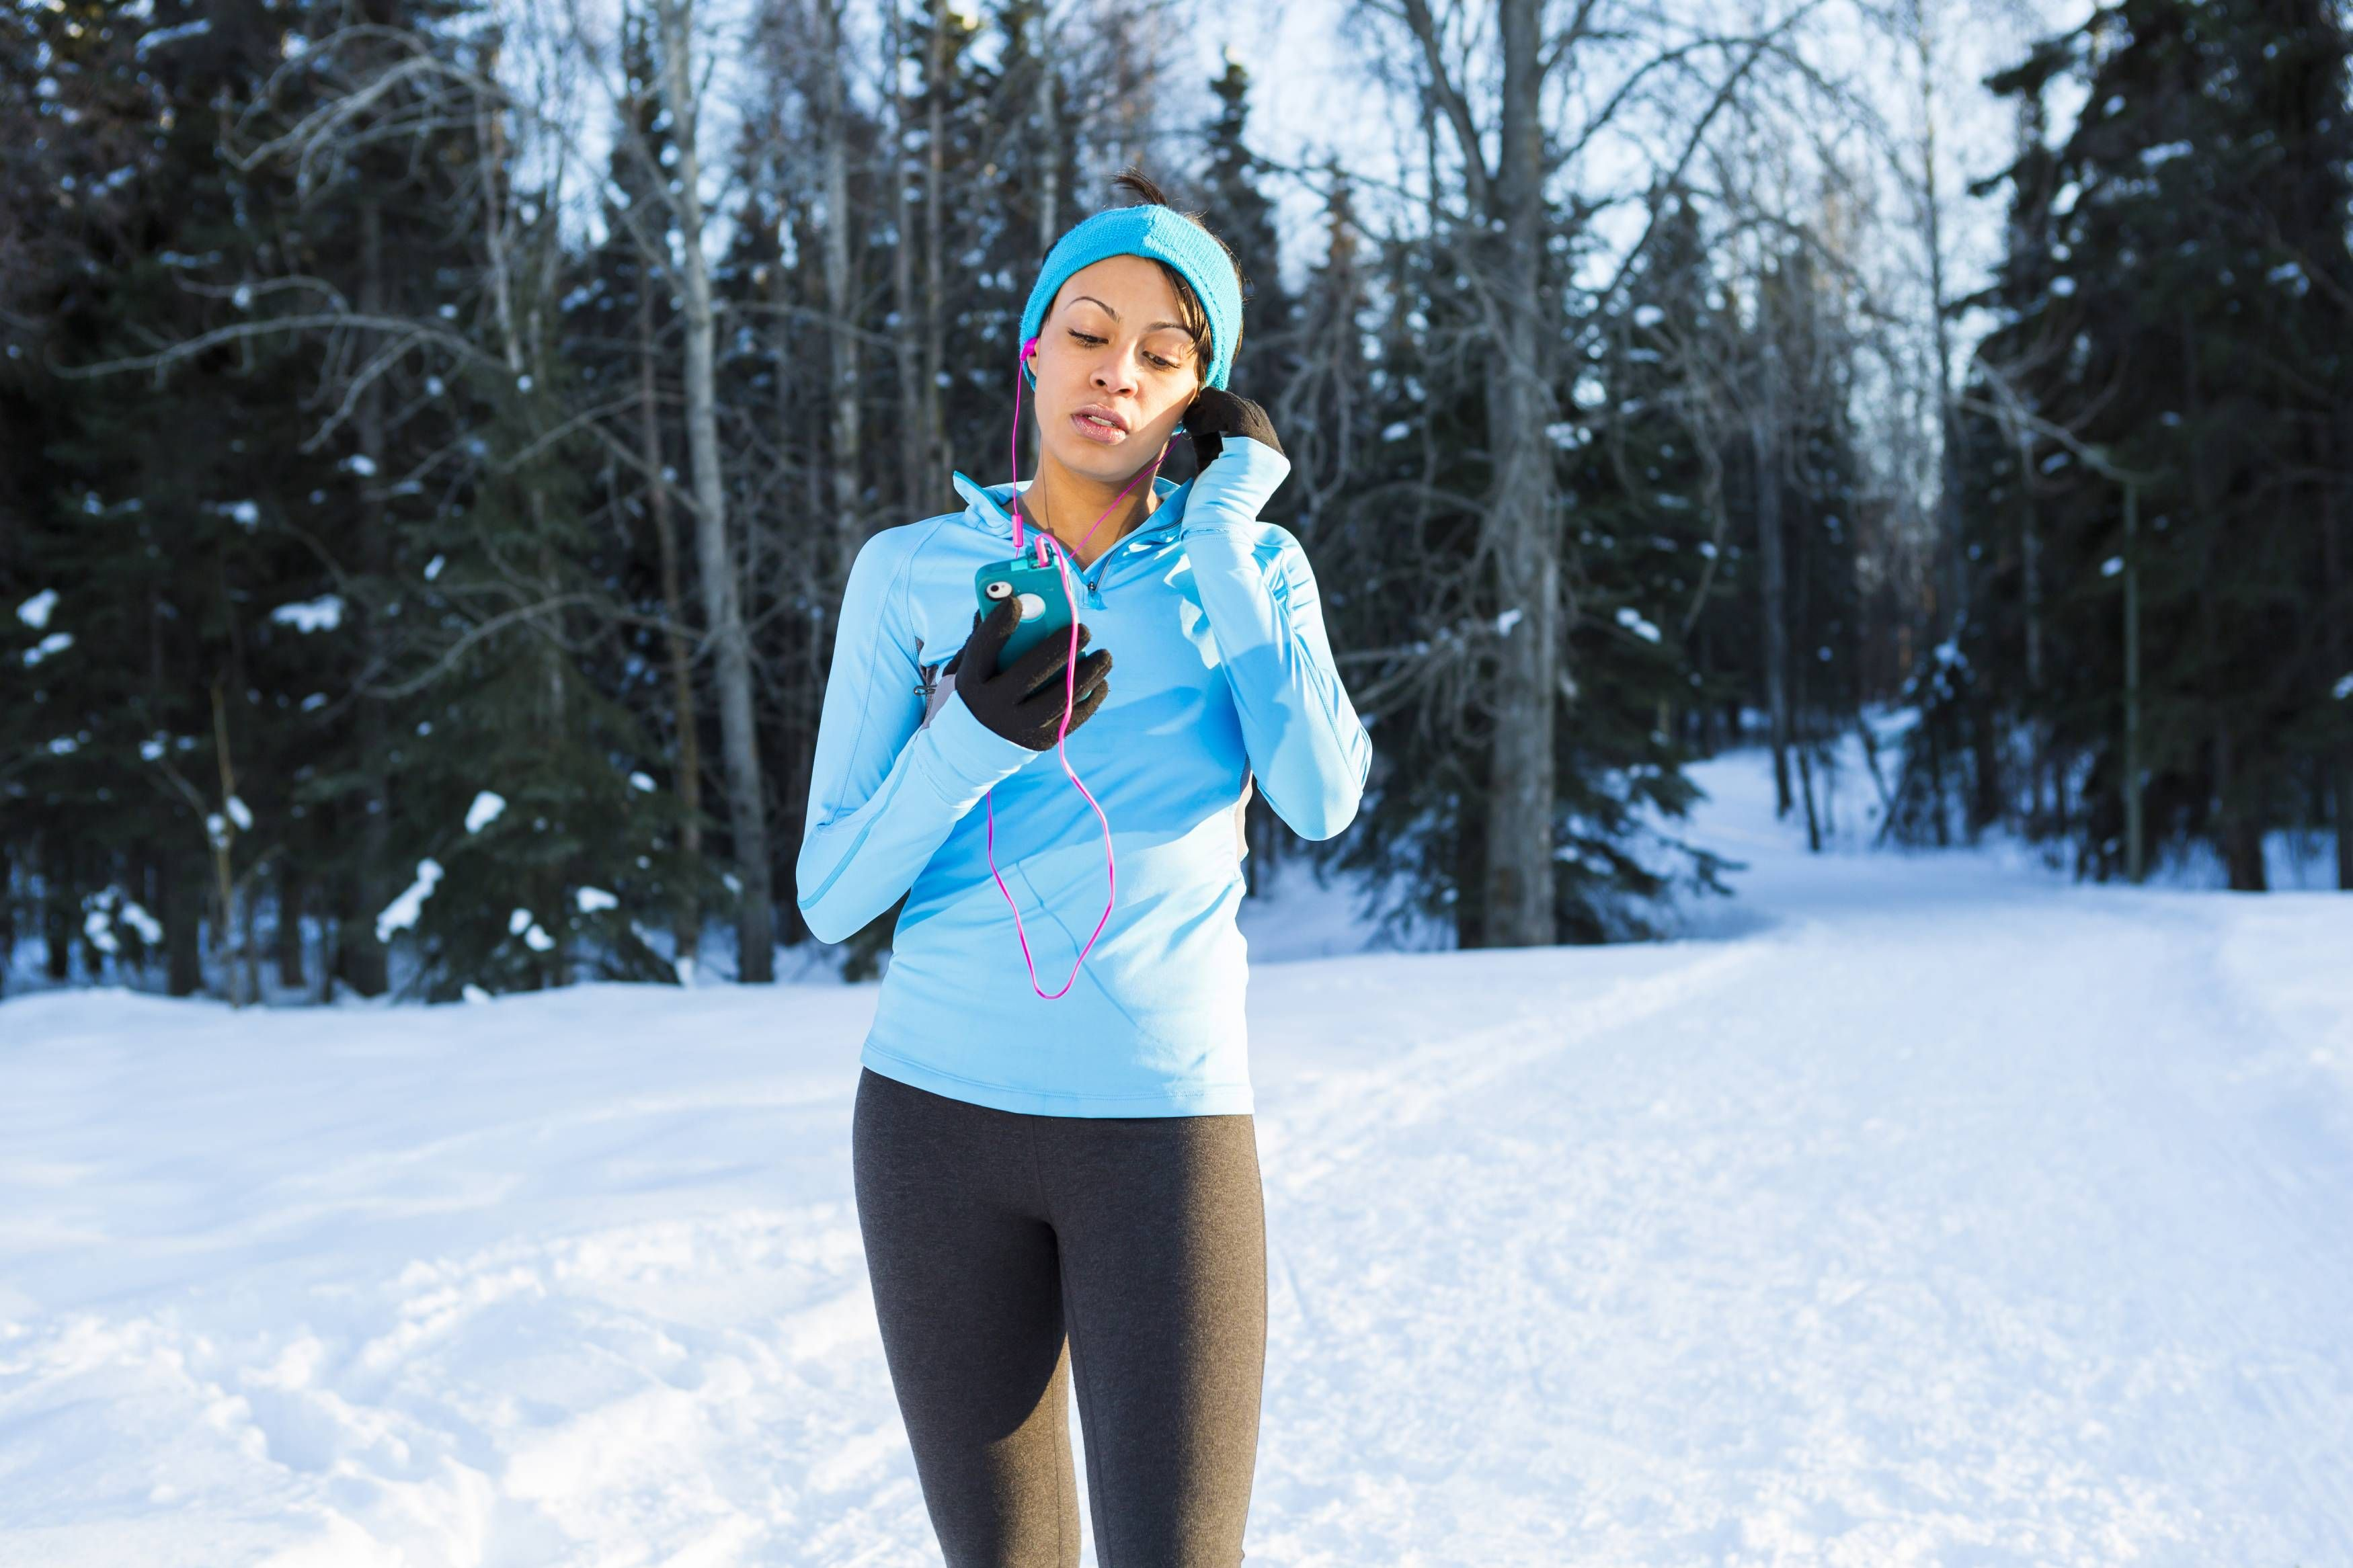 Easy Winter Walking Workout Plans That Help You Stay Fit When It's Freezing